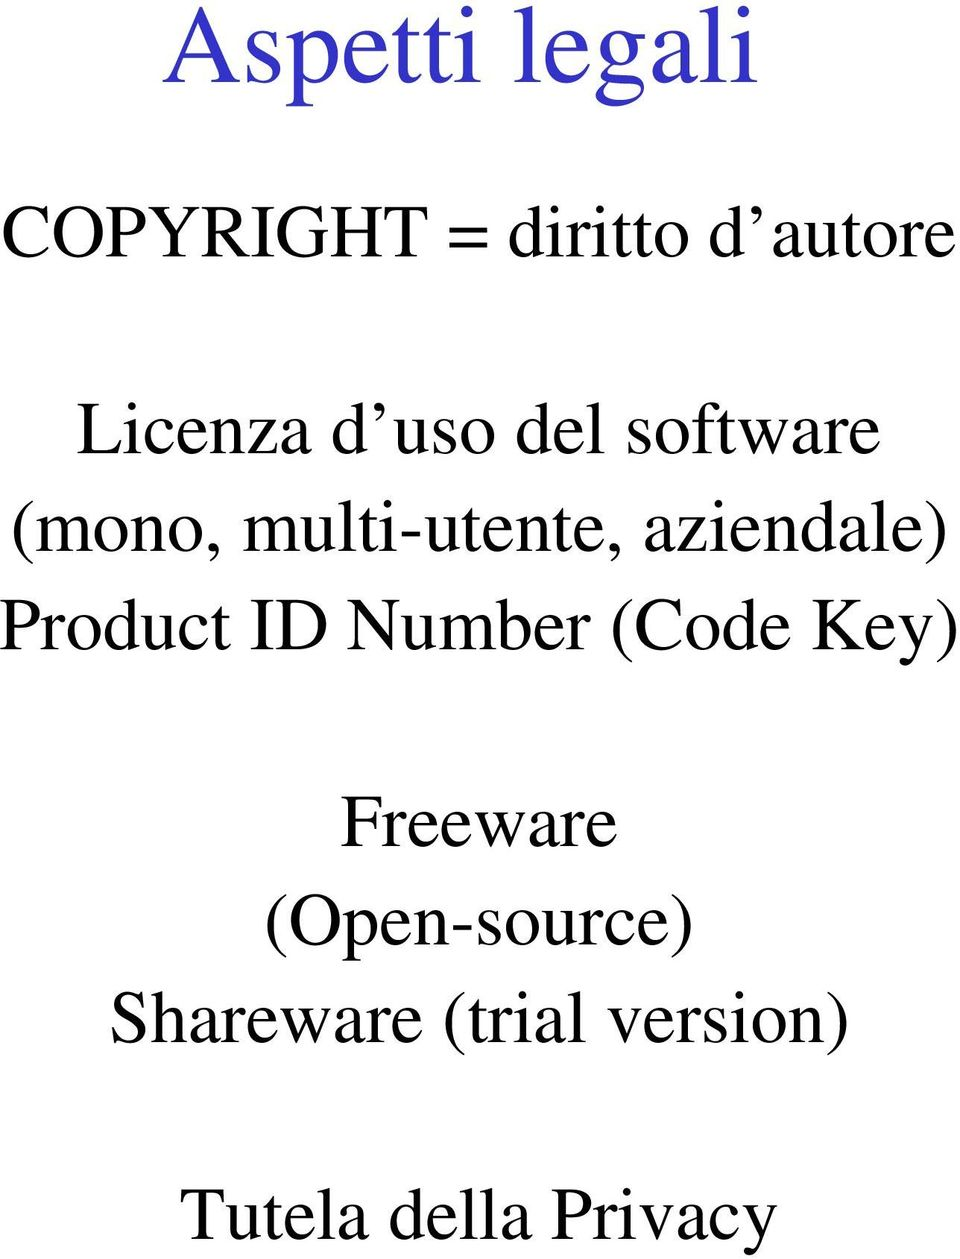 aziendale) Product ID Number (Code Key) Freeware